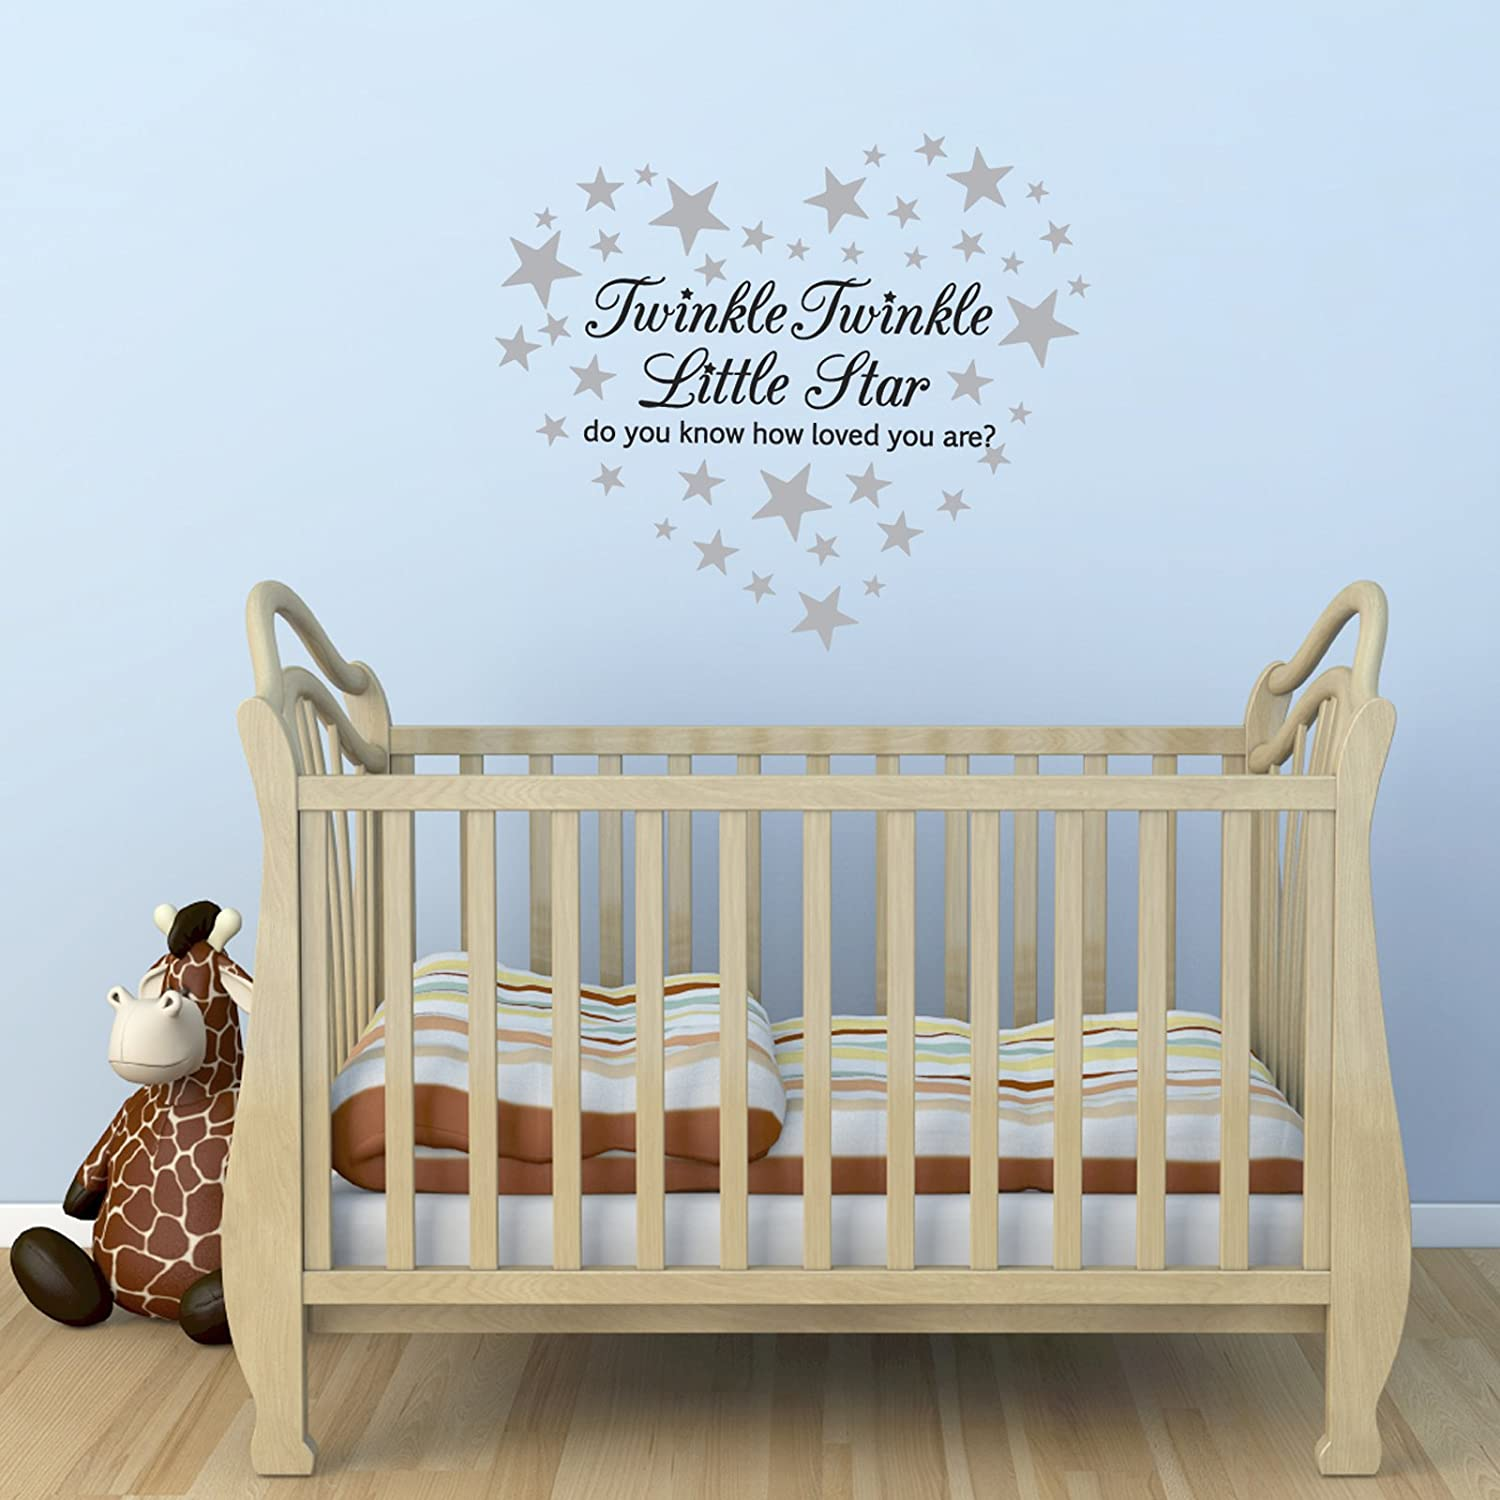 twinkle twinkle little star wall sticker with 60 silver star twinkle twinkle little star wall sticker with 60 silver star stickers amazon co uk kitchen home